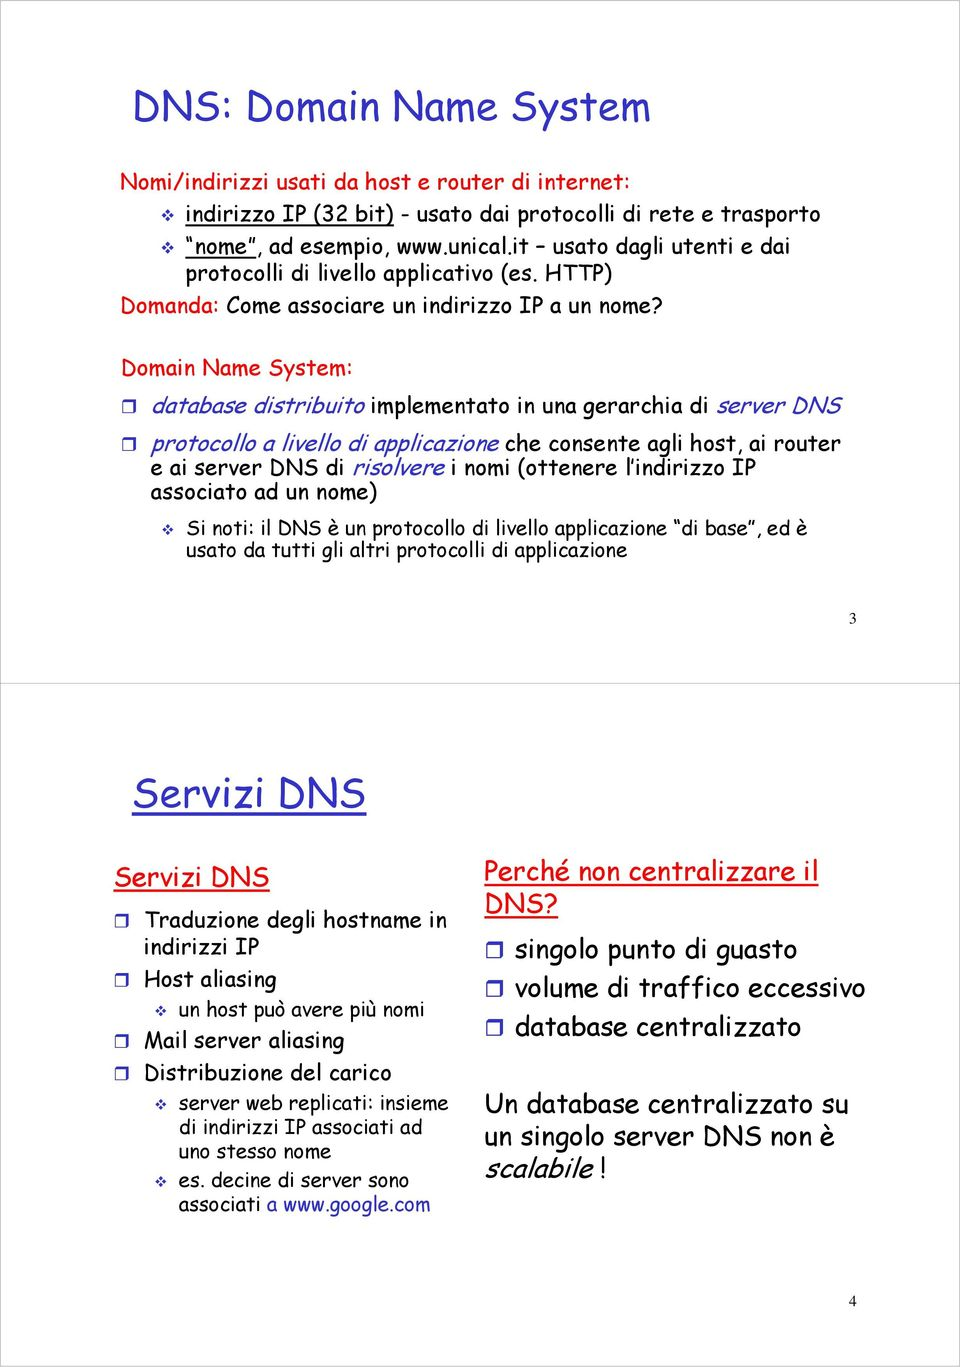 Domain Name System: database distribuito implementato in una gerarchia di server DNS protocollo a livello di applicazione che consente agli host, ai router e ai server DNS di risolvere i nomi